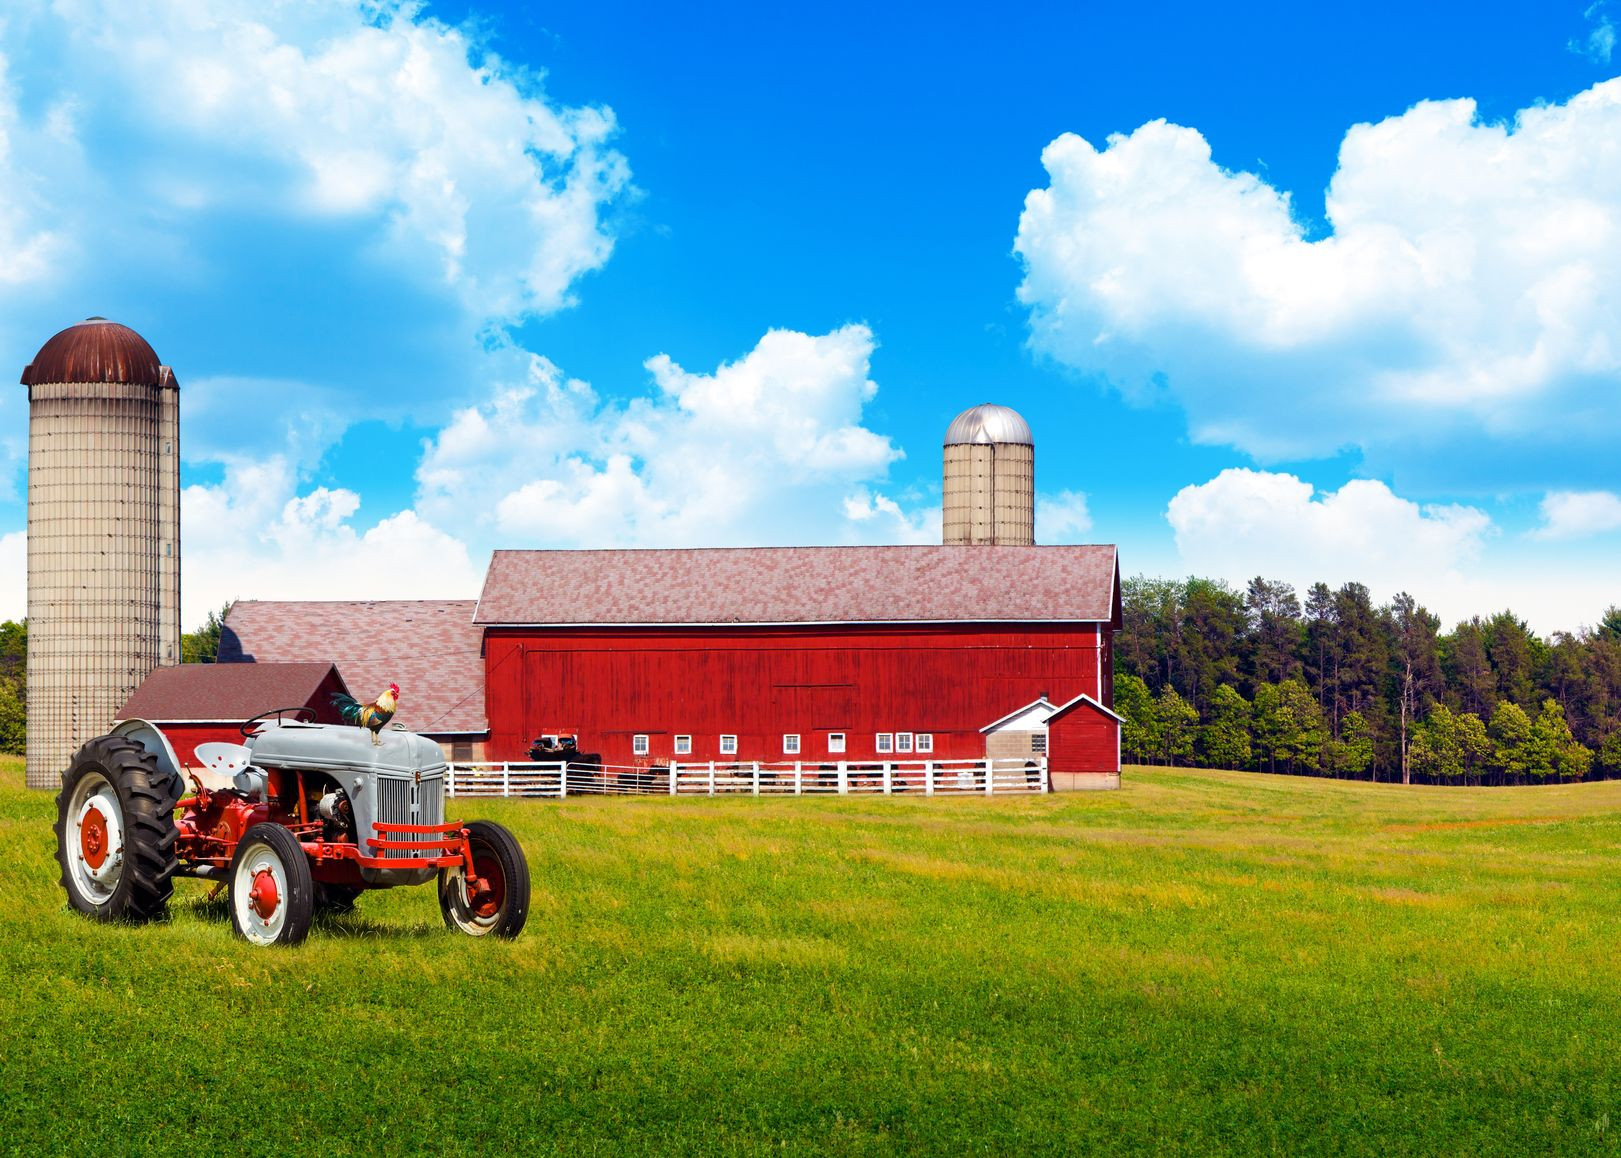 San Antonio, TX. Farm & Ranch Insurance